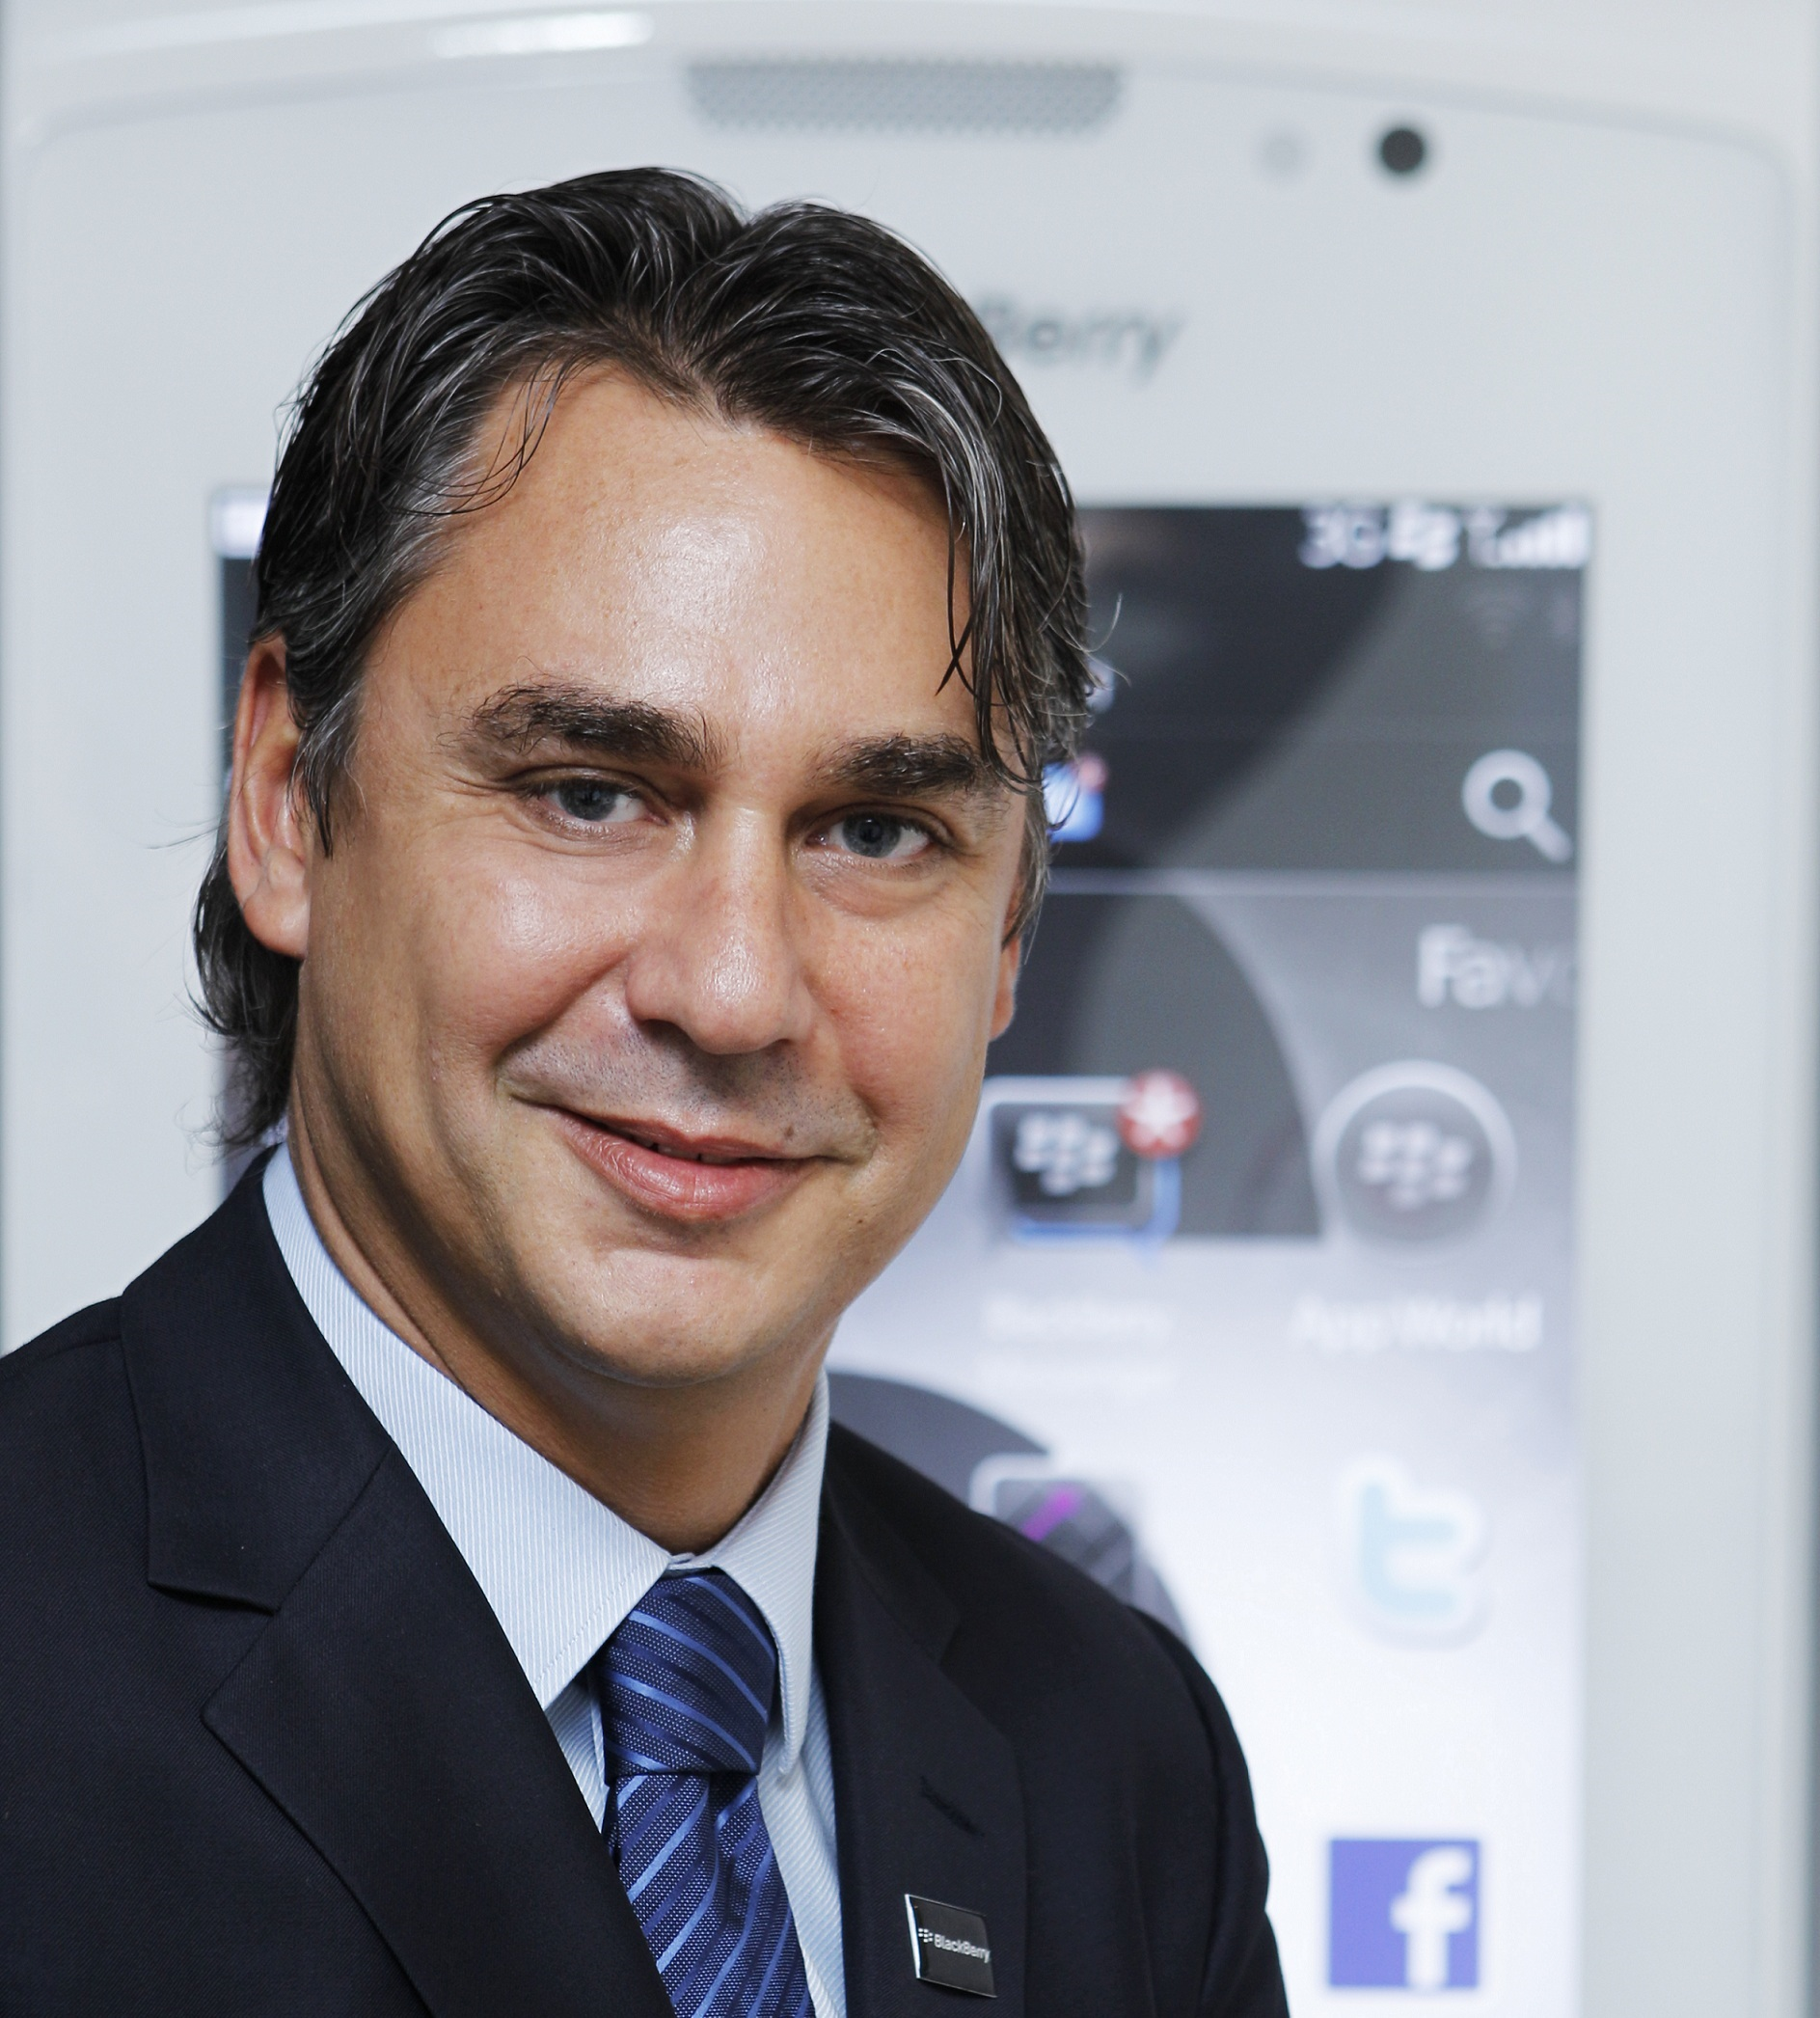 Christophe Corsi, Country Director for UAE, BlackBerry